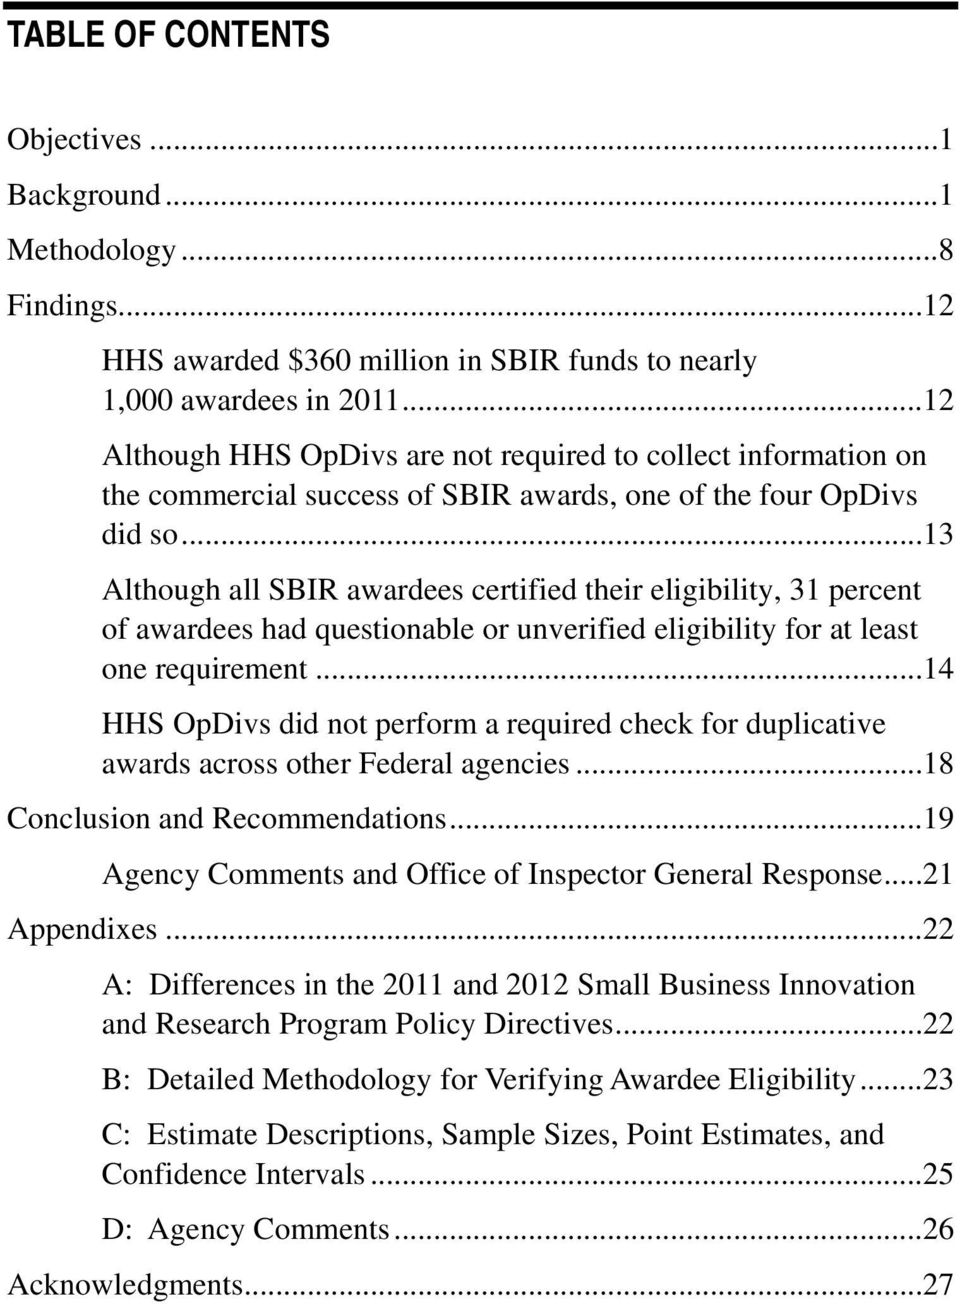 ..13 Although all SBIR awardees certified their eligibility, 31 percent of awardees had questionable or unverified eligibility for at least one requirement.